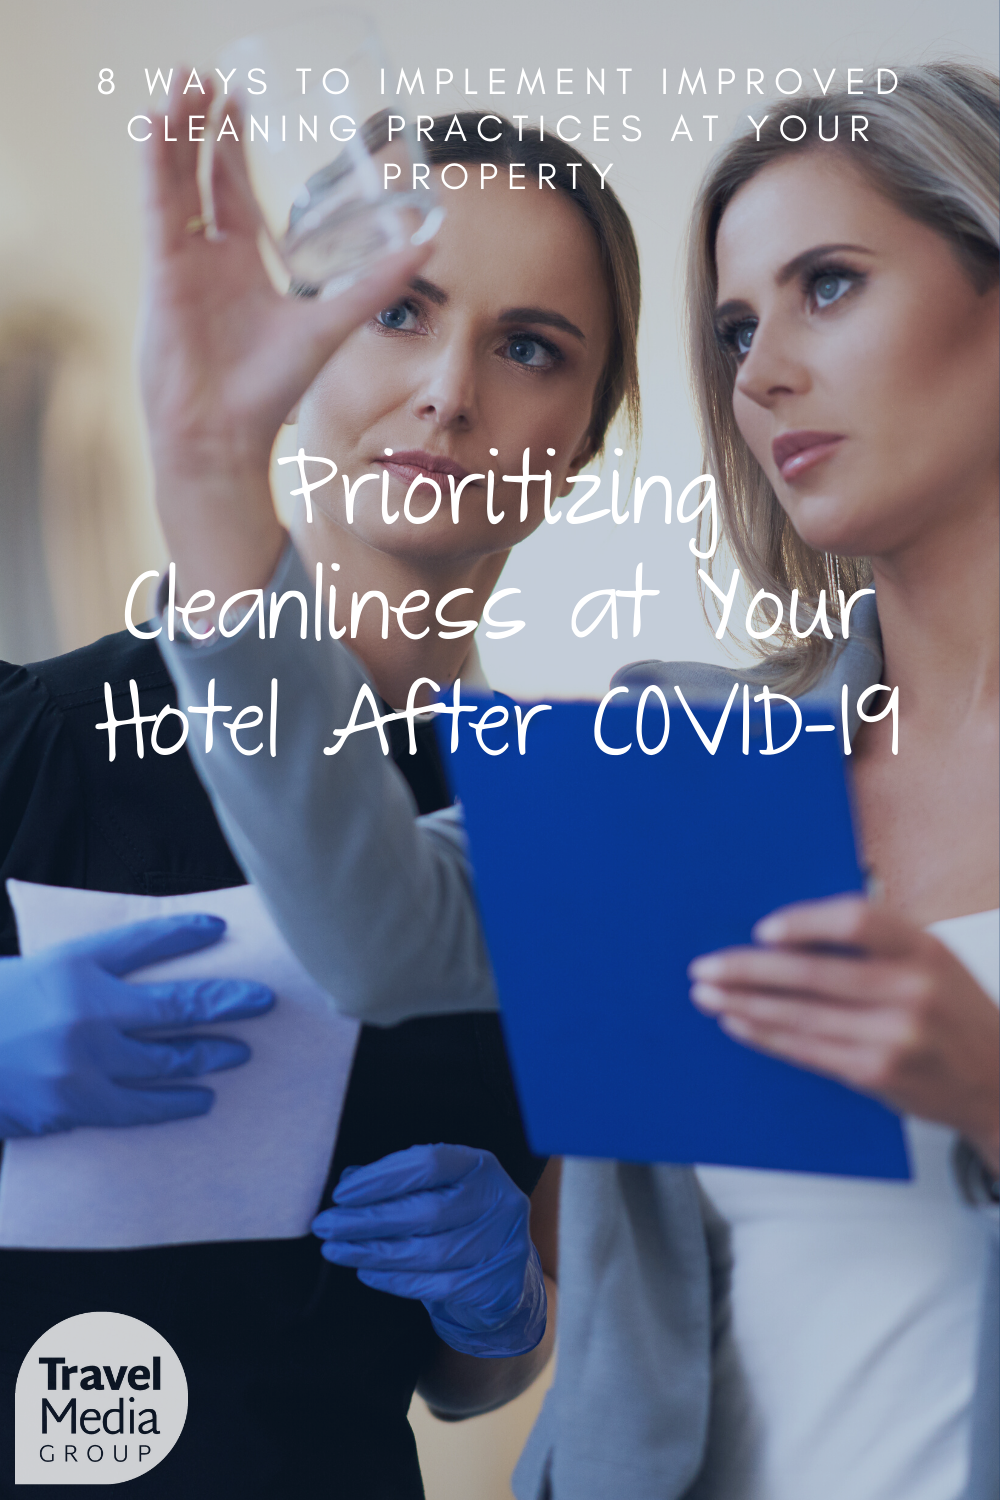 Cleanliness is among the top concerns for travelers amid the global pandemic. We discuss 8 ways to implement new strategies to combat the spread of bacteria and make your guests feel safe.